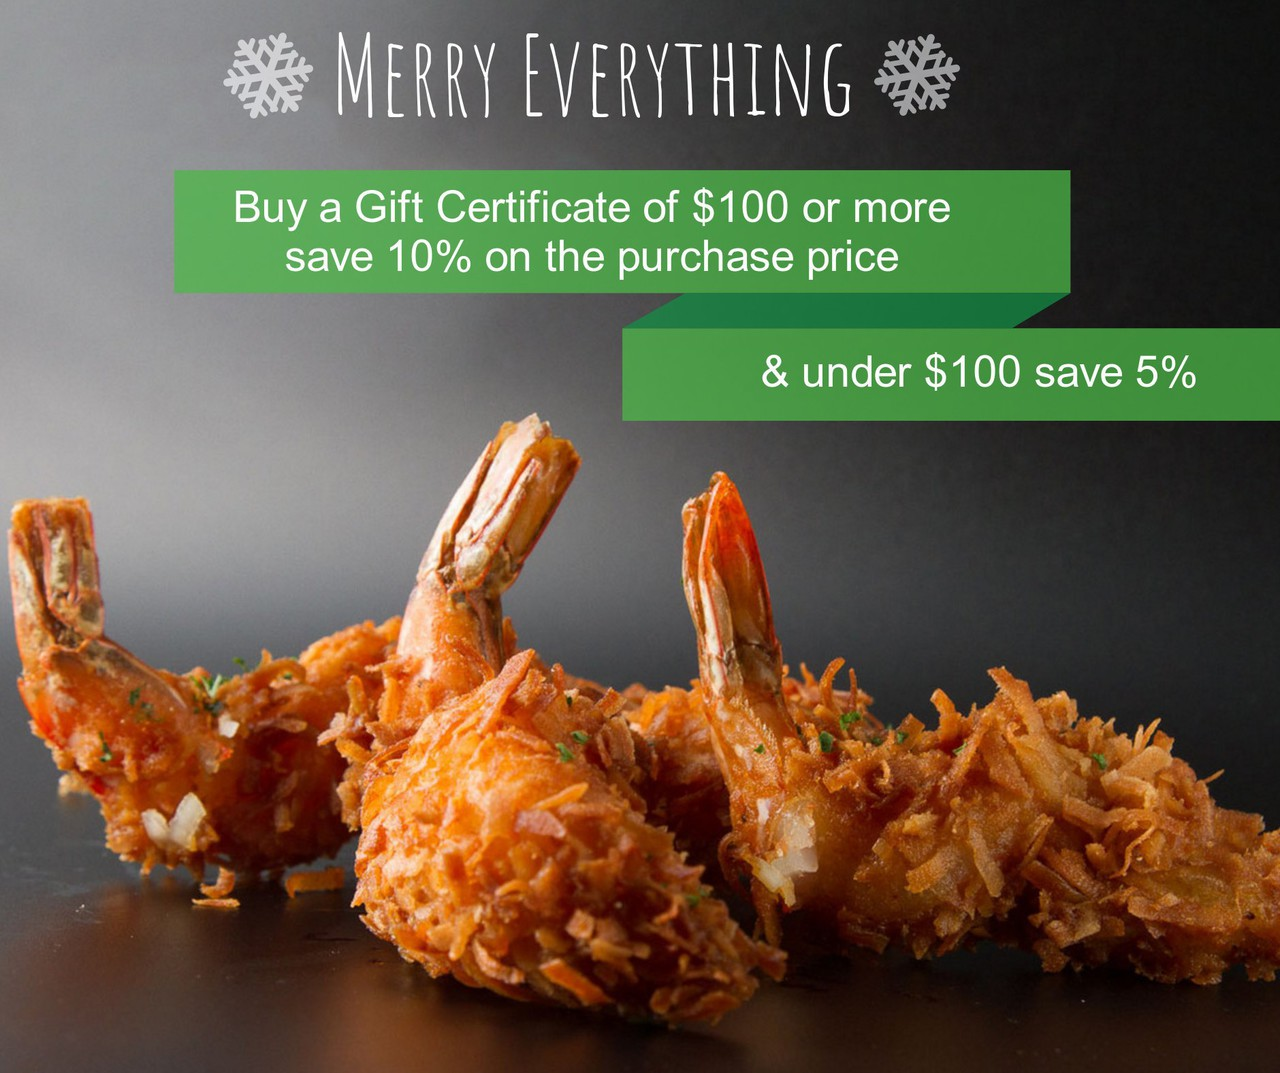 Holiday Gift Certificate Deal